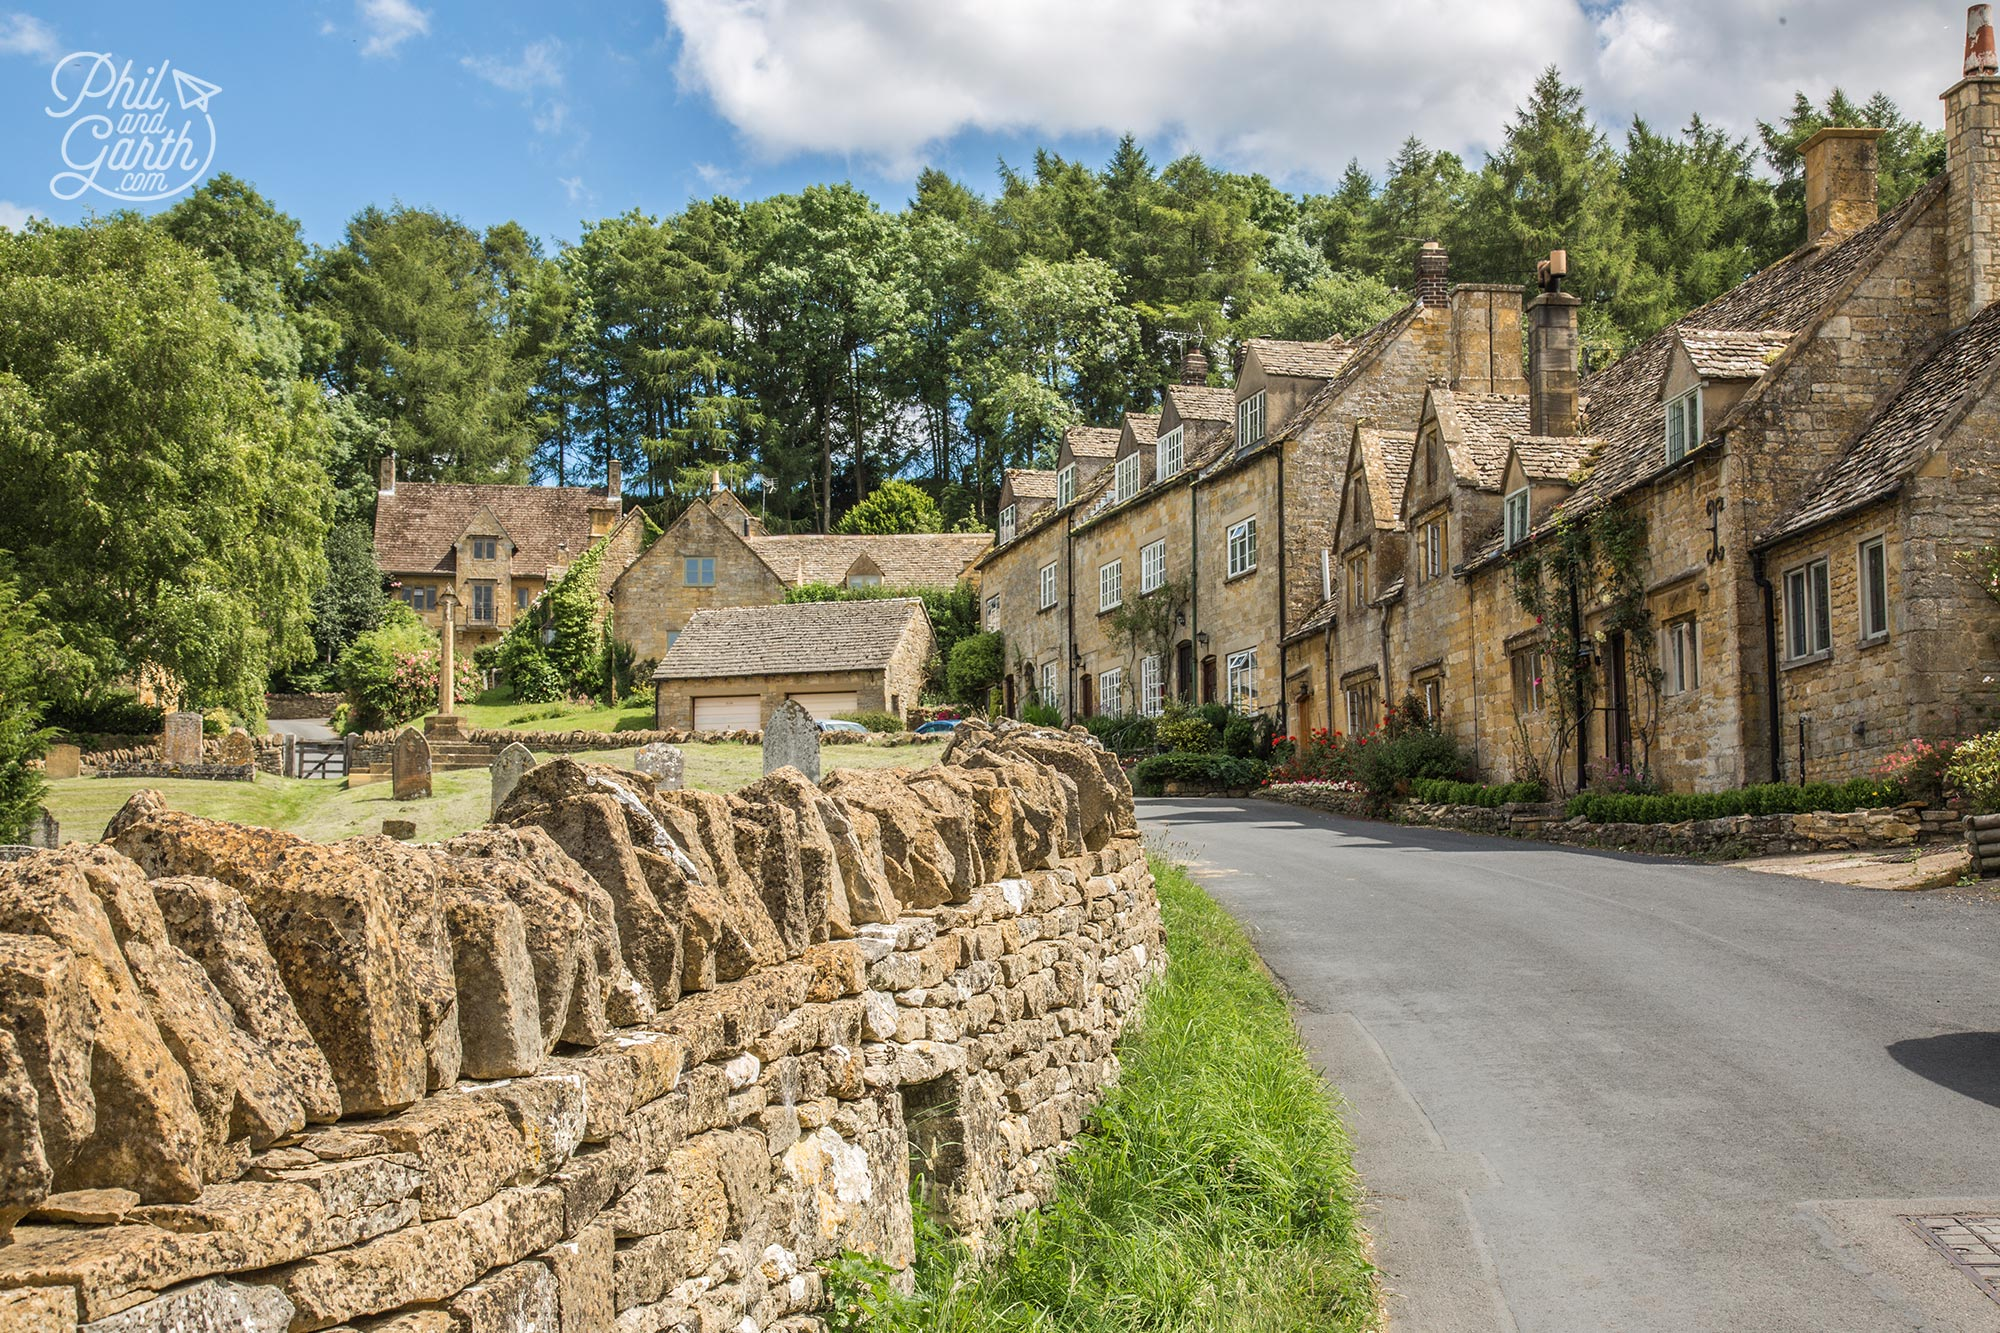 Snowshill dry stone wall and residential homes, The Cotswolds